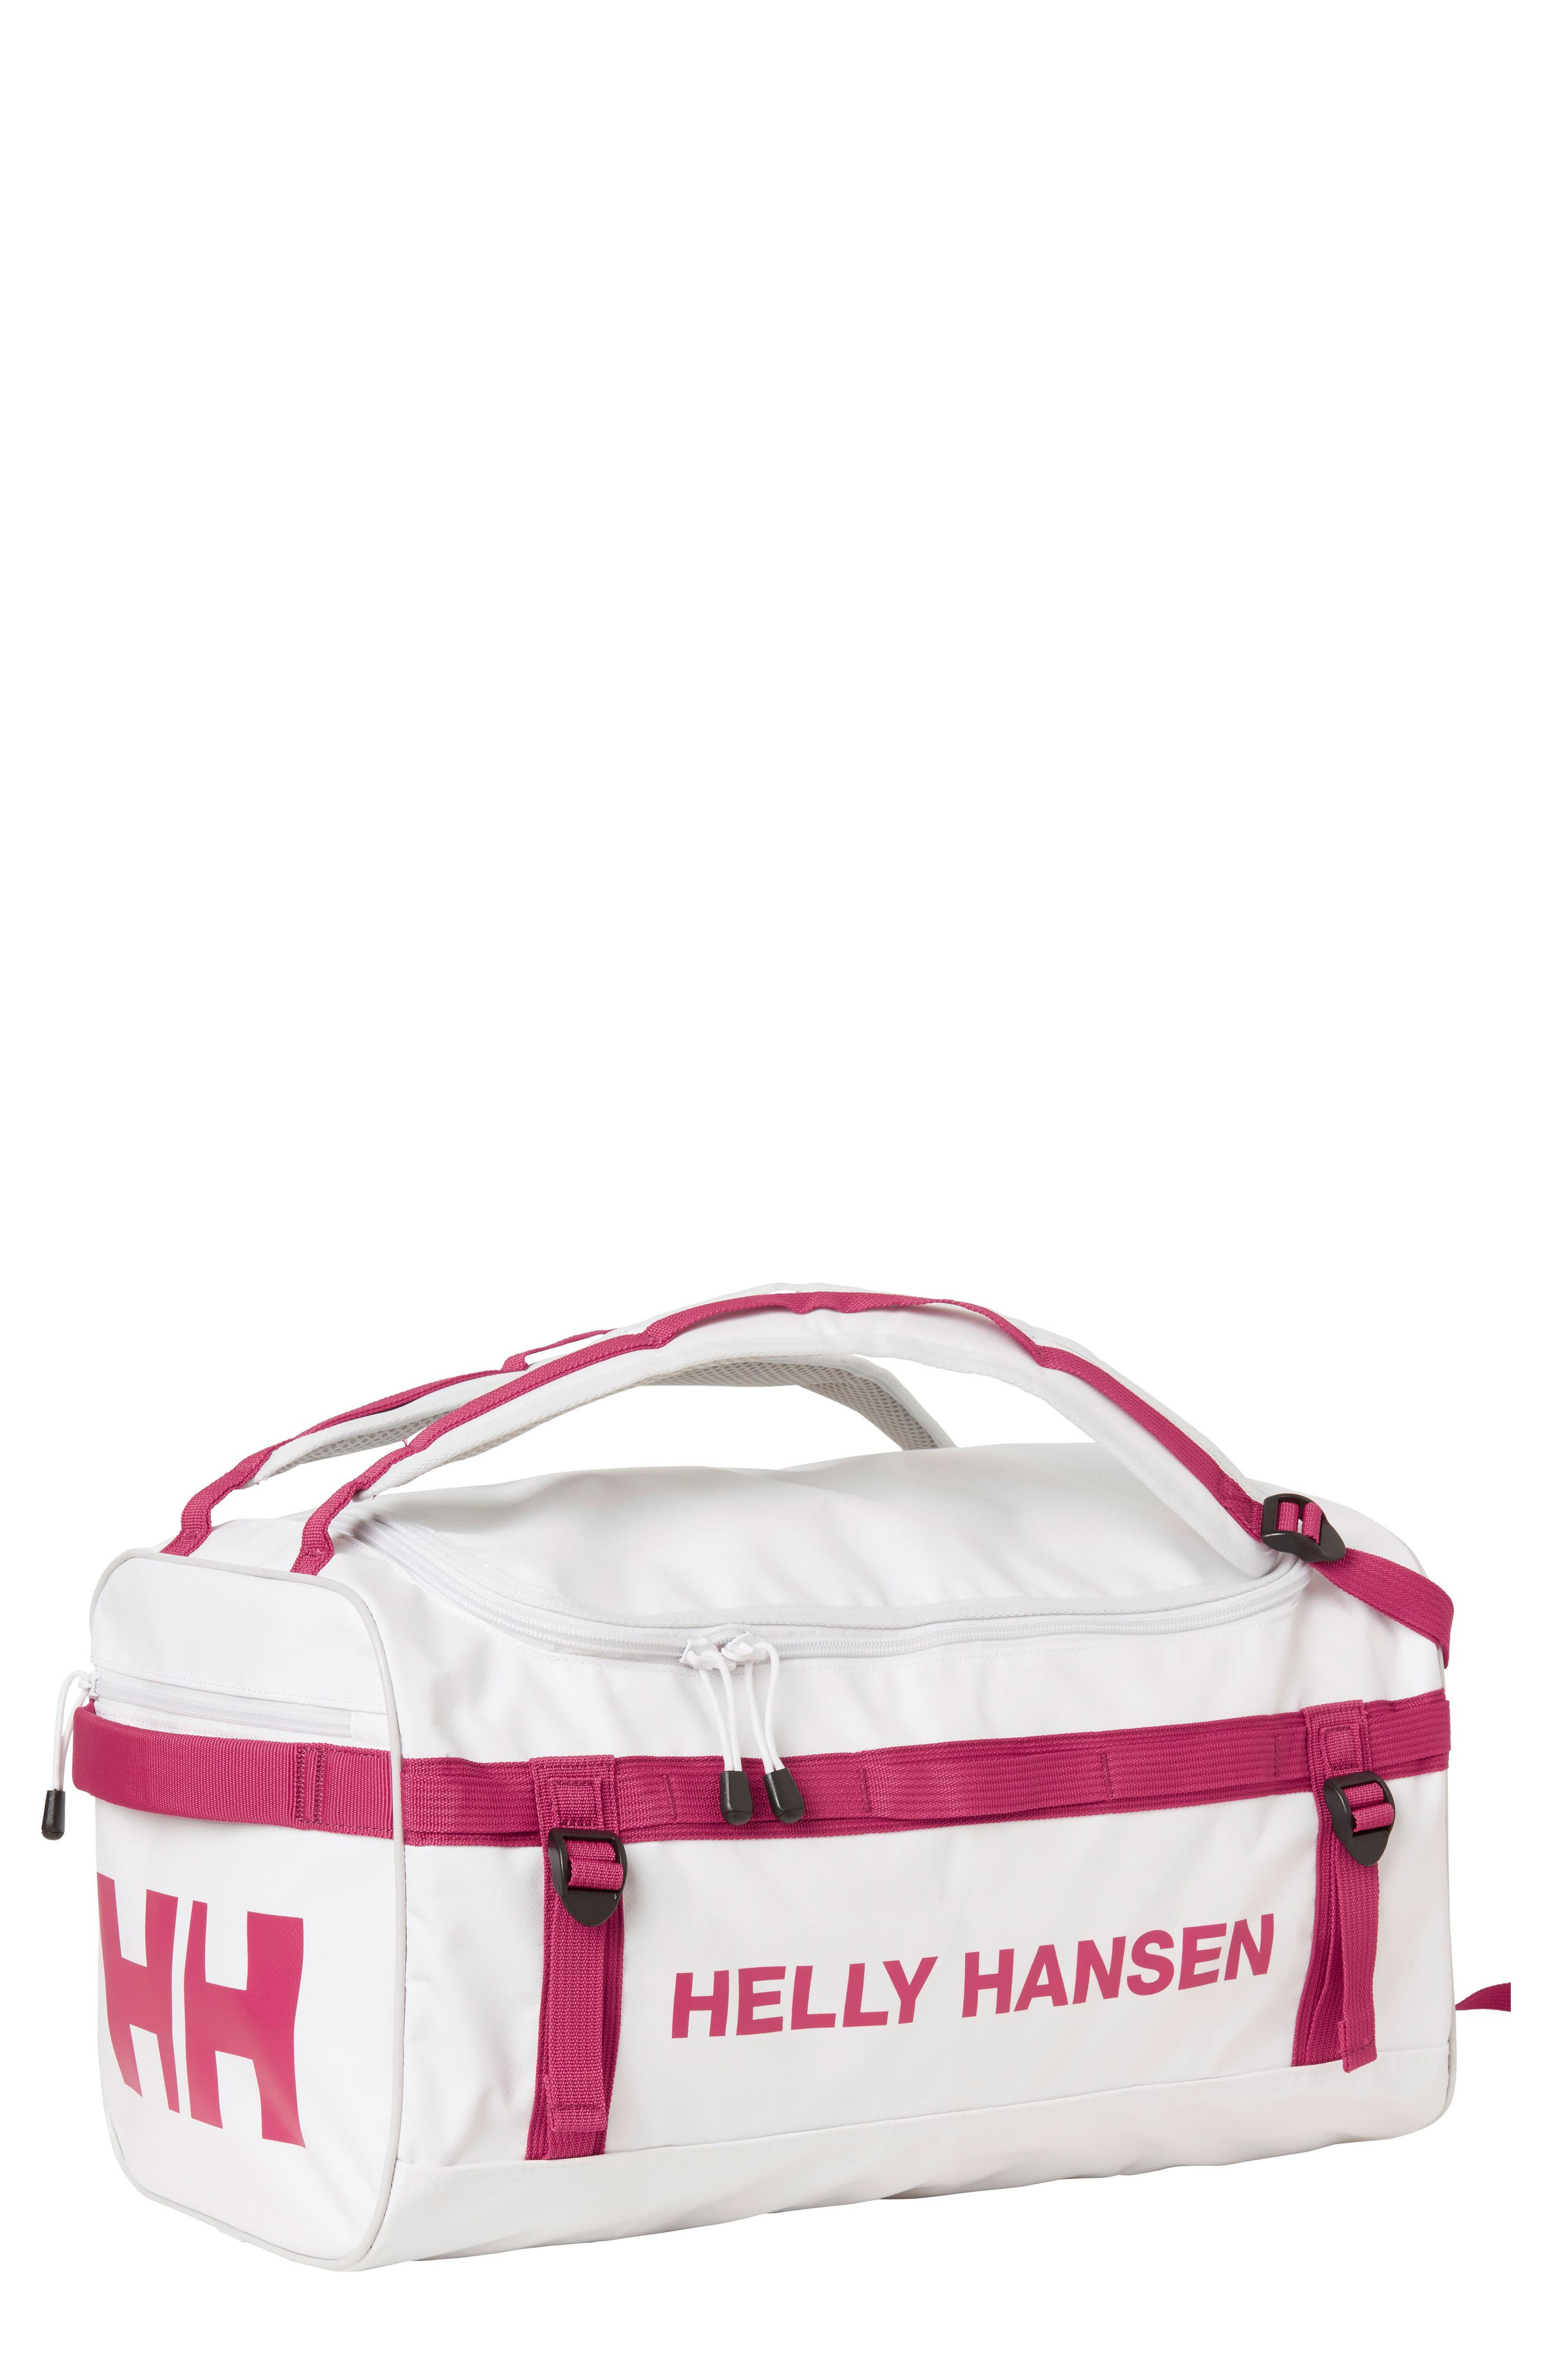 New Classic Extra Small Duffel Bag,                             Main thumbnail 1, color,                             White